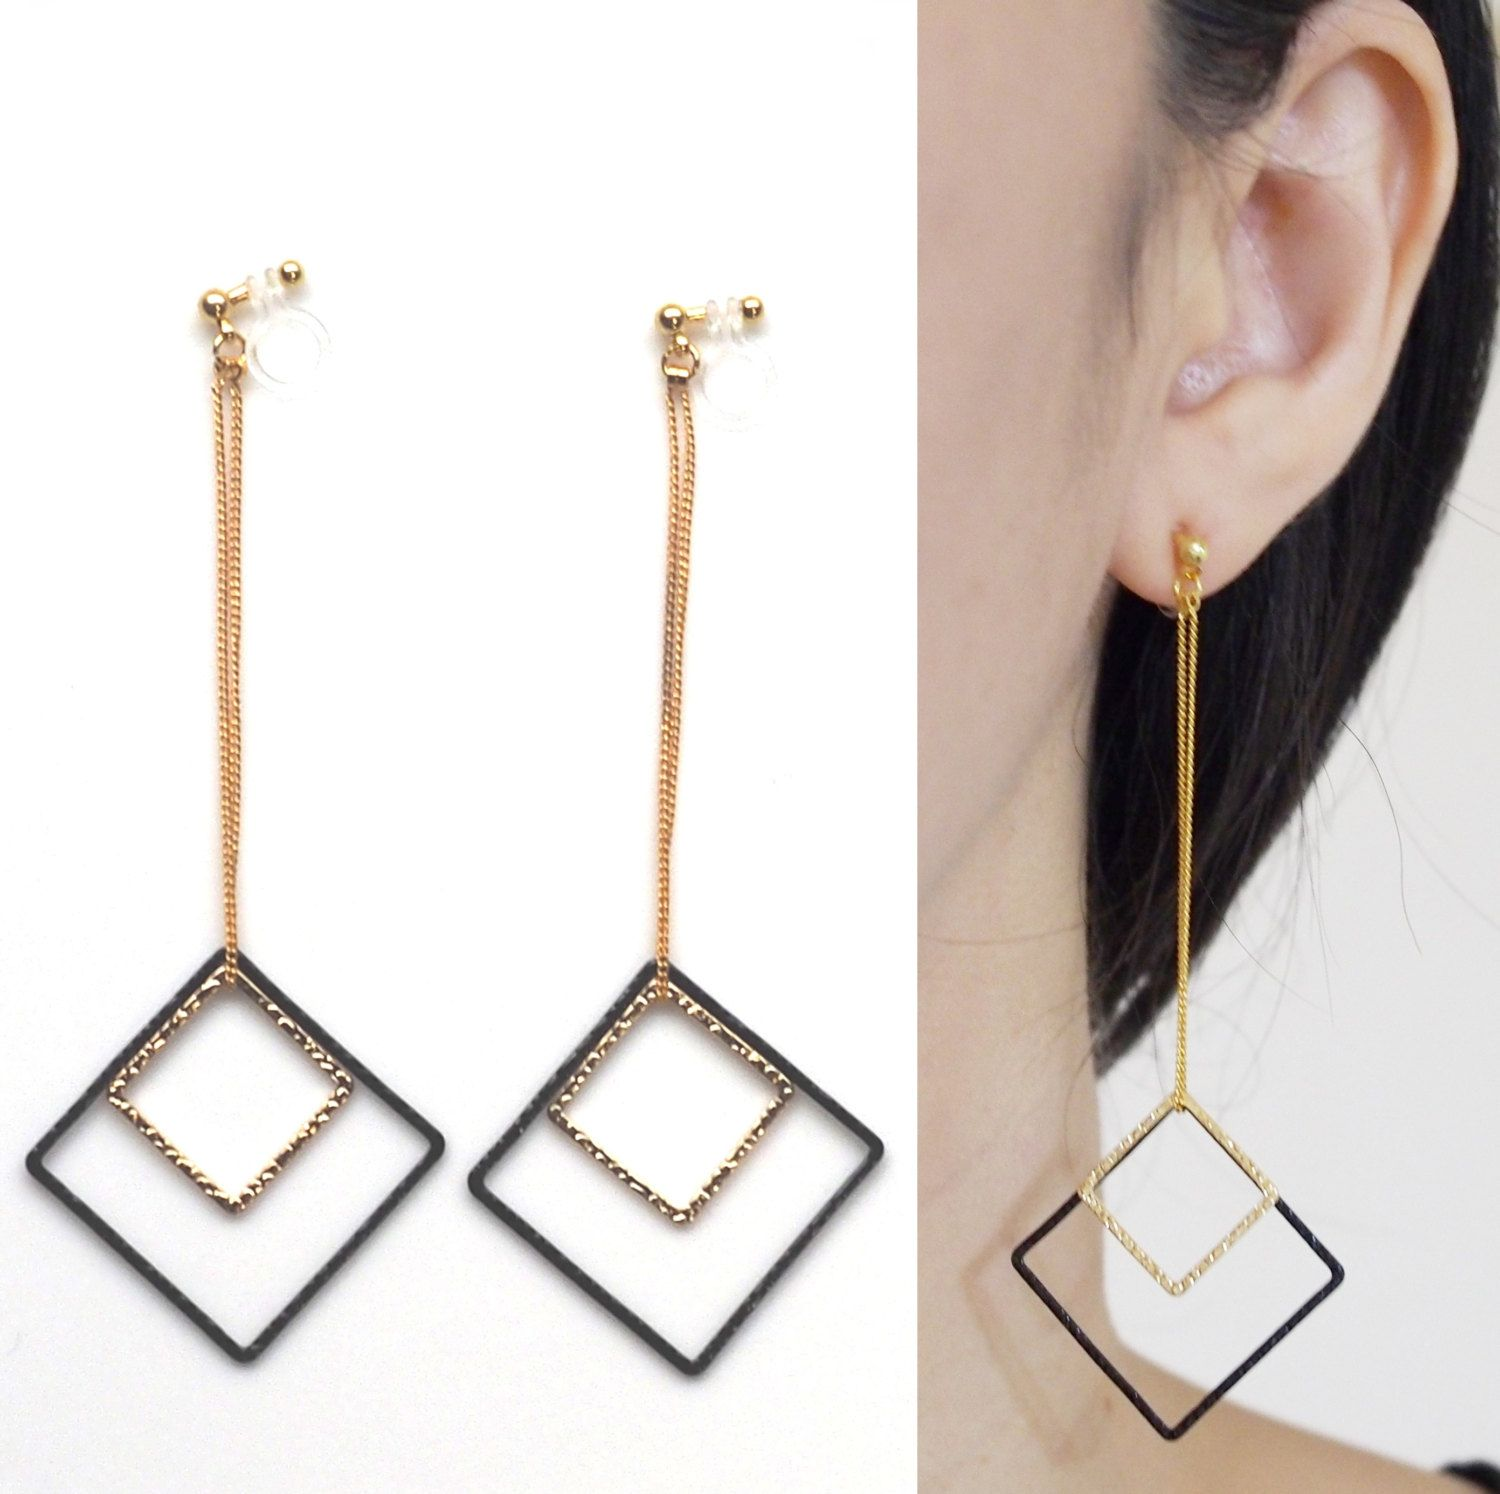 Long Dangle Invisible Clip On Earrings Geometric Jewelry Gold And Black Chic Ons Non Pierced Gift For Her By Miyarace